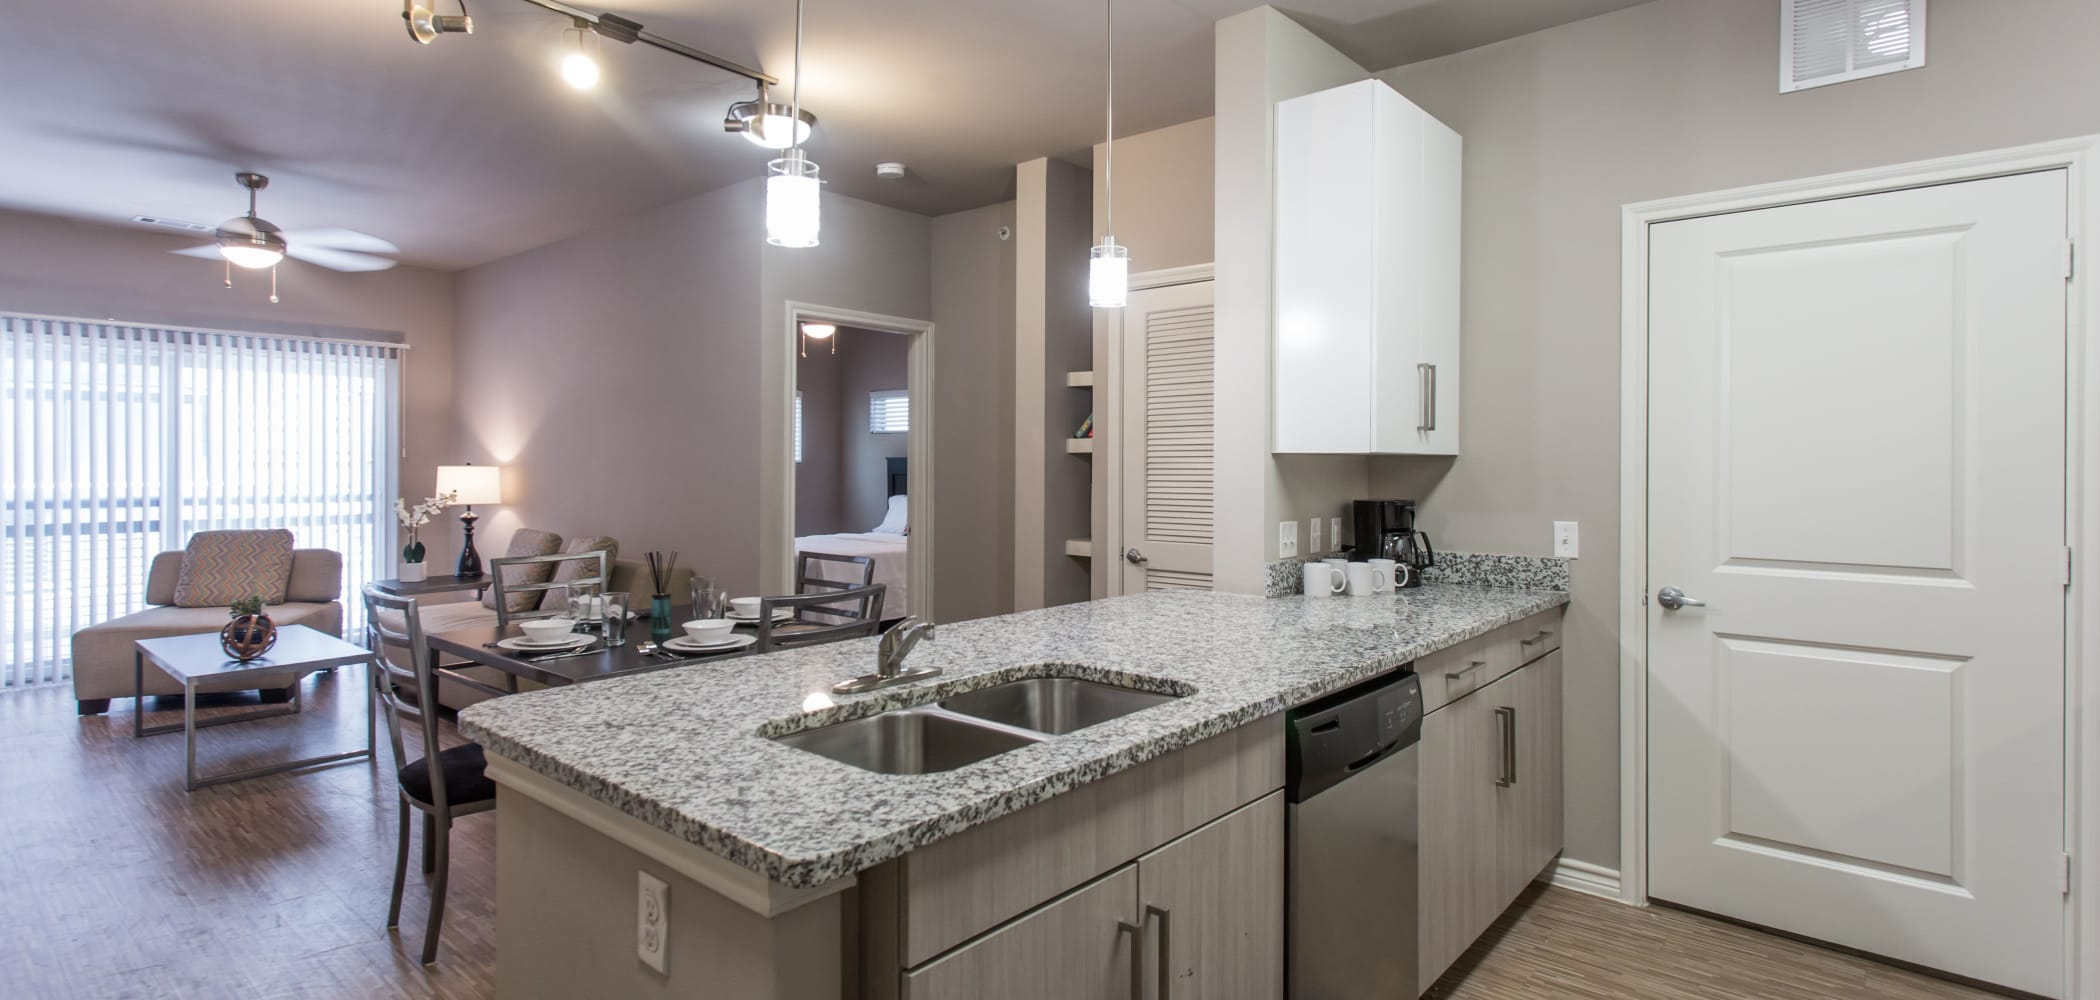 Fully equipped kitchen at Texan 26 in Austin, Texas